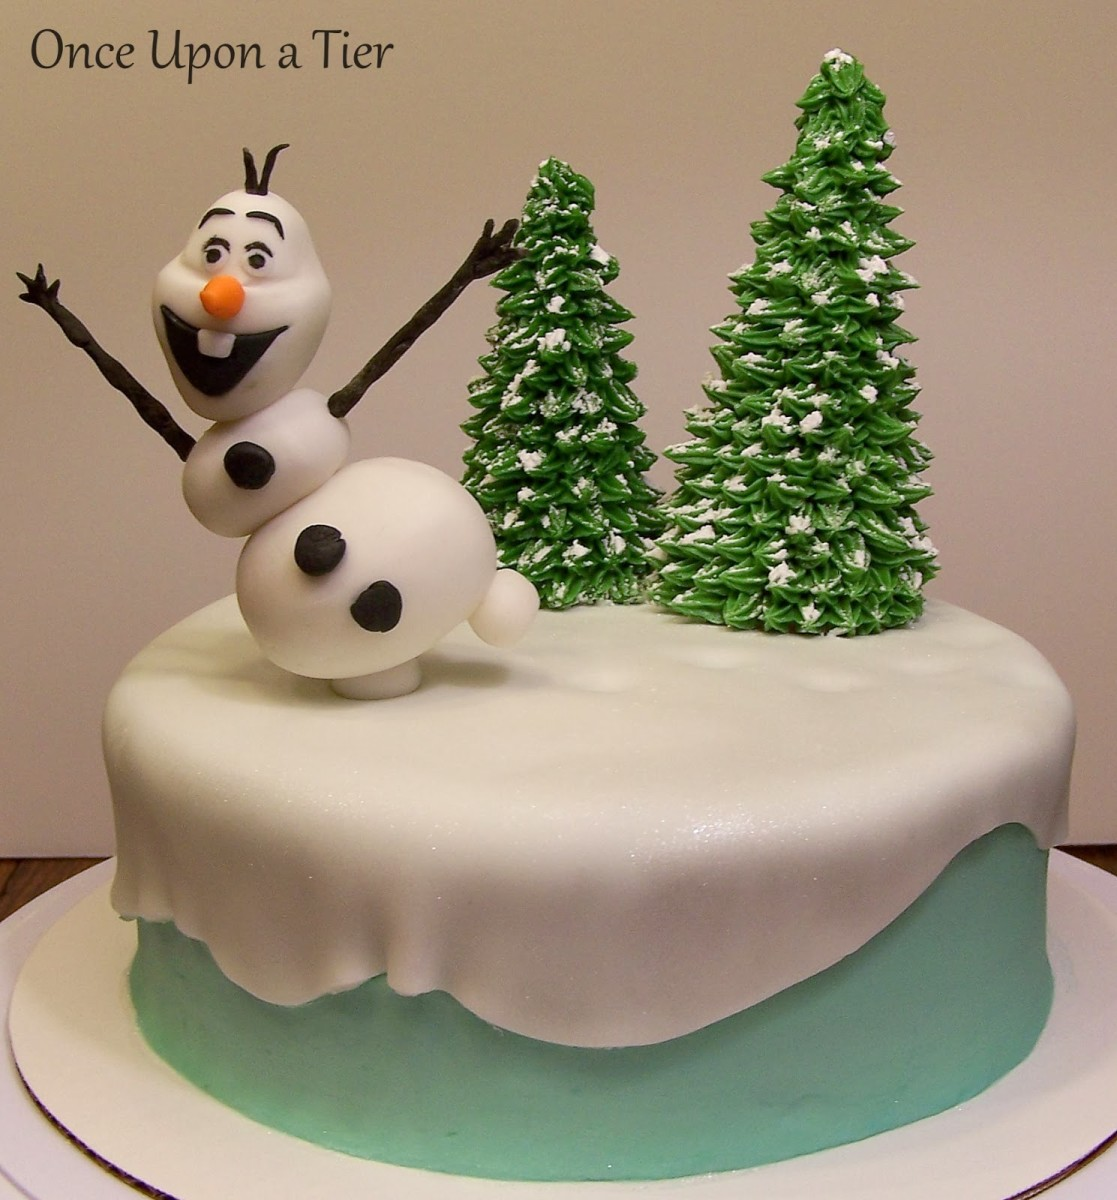 Fun Olaf Birthday Cake with Edible Trees